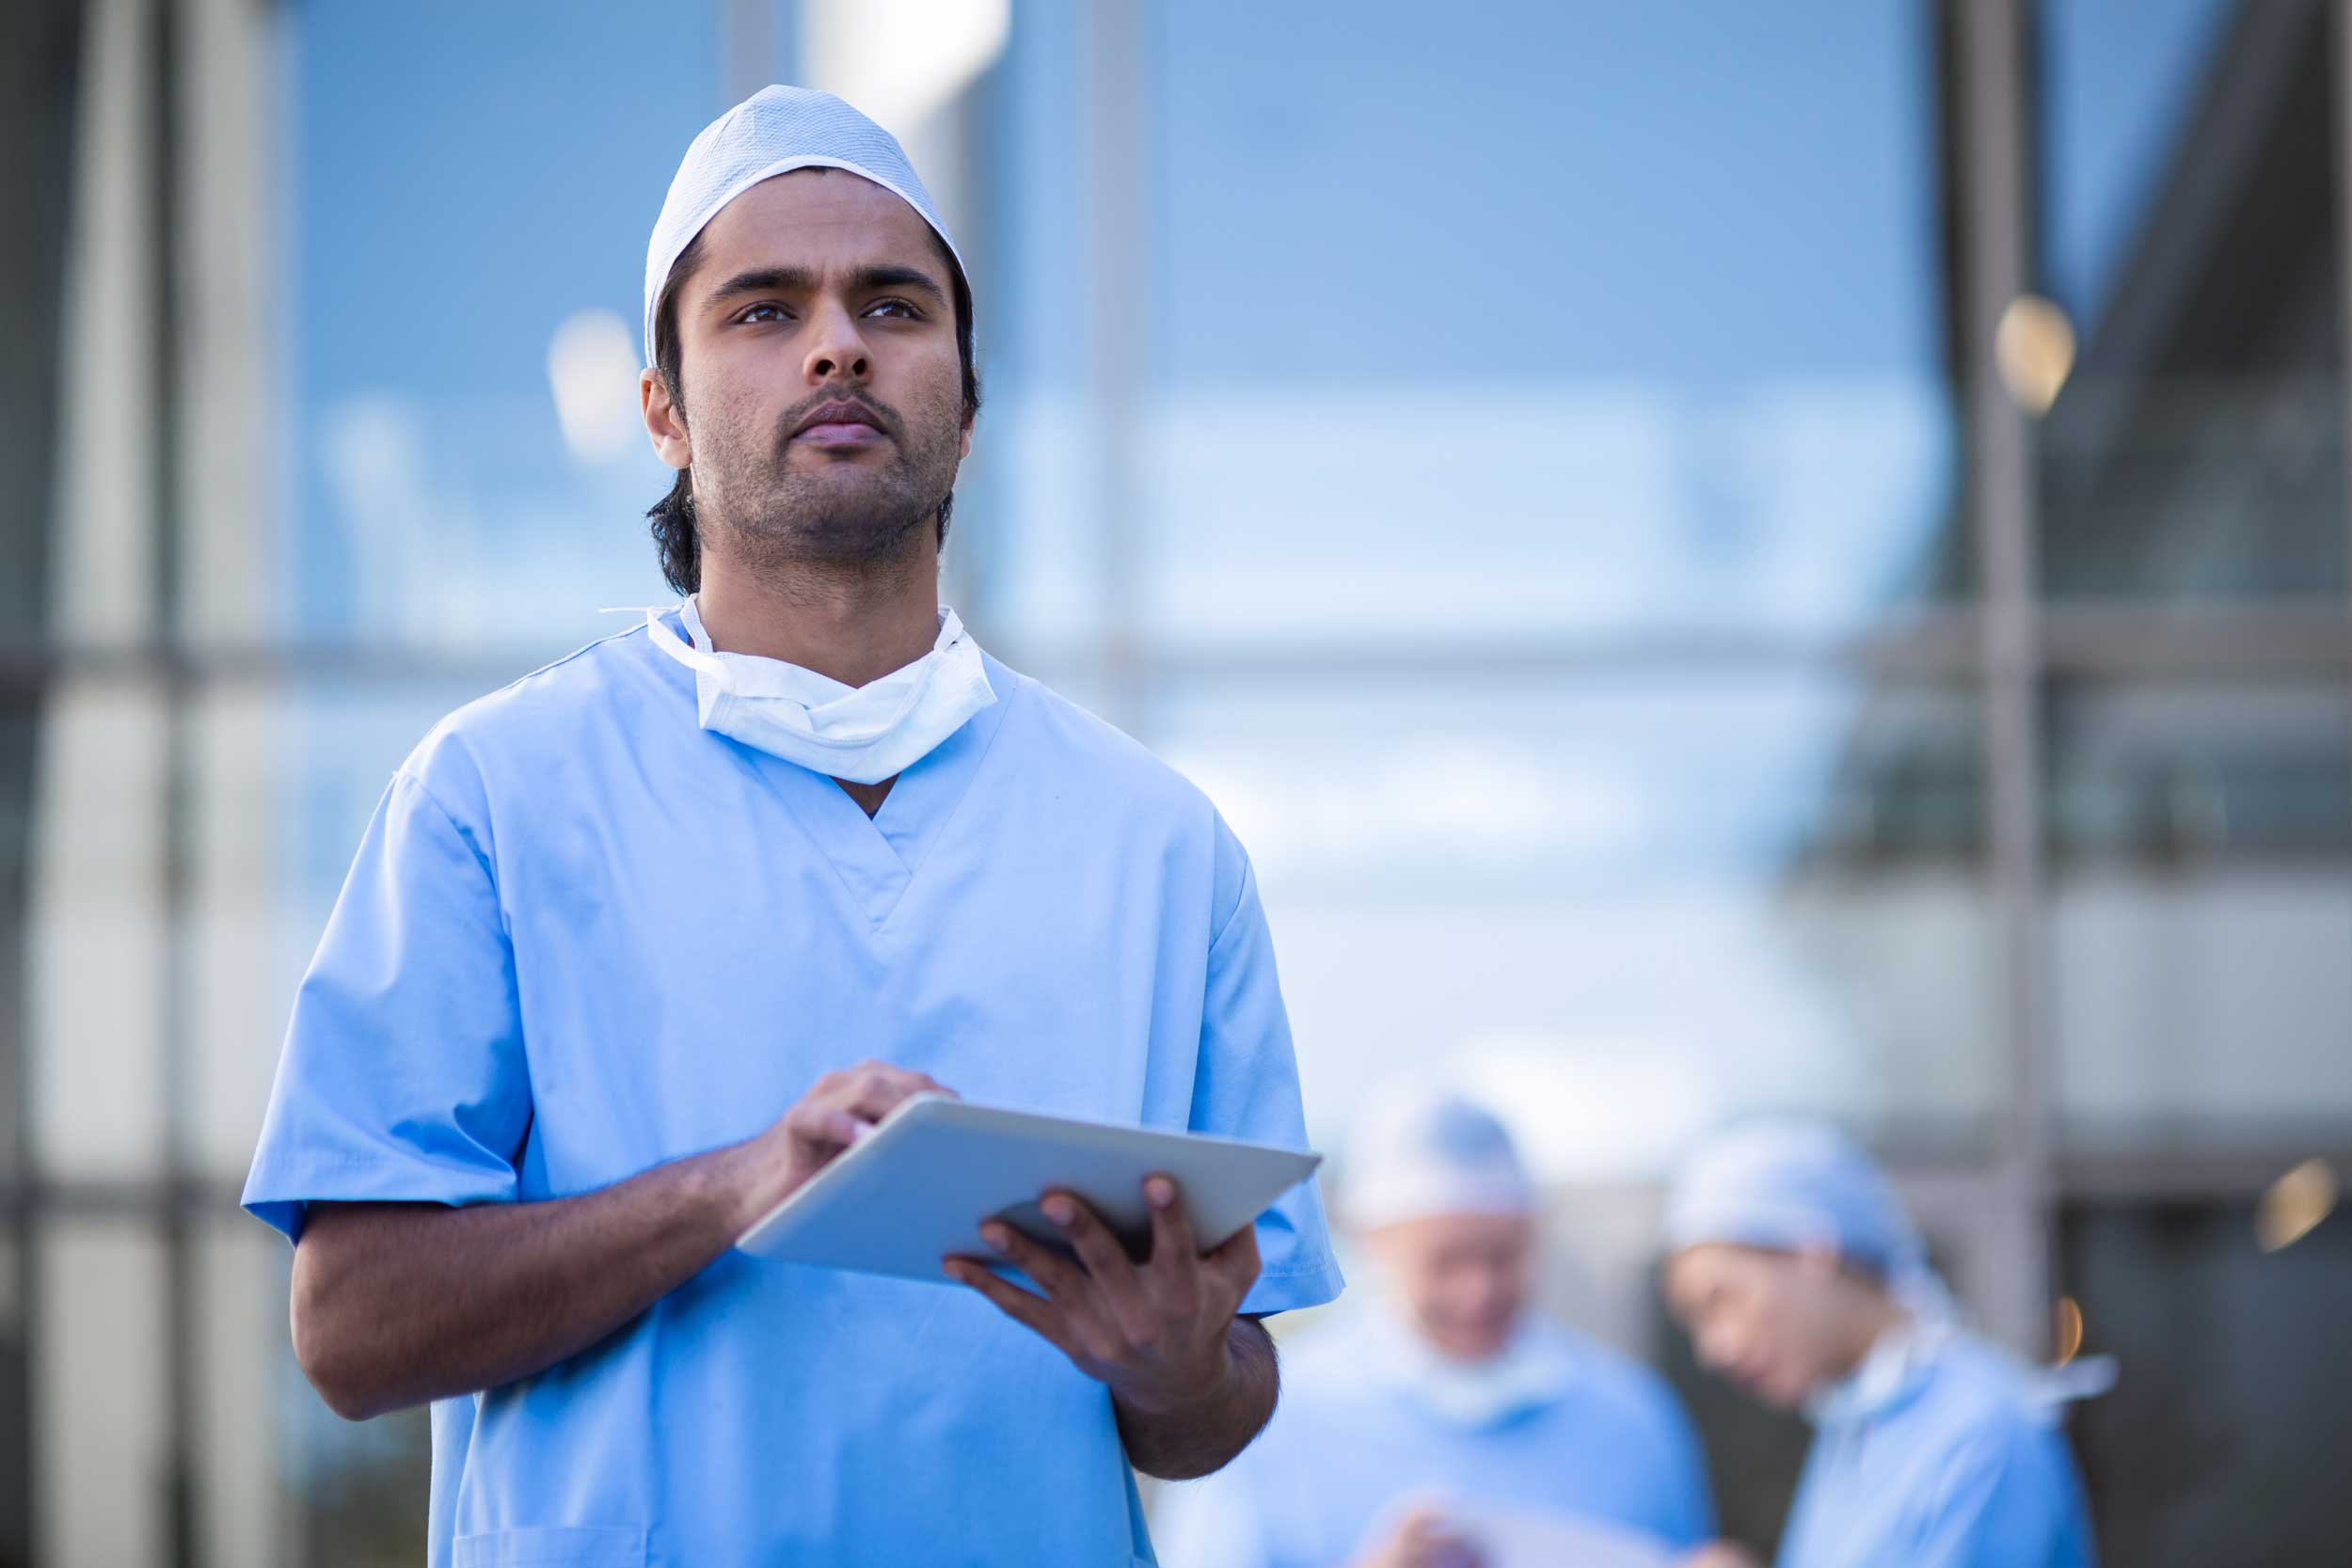 Keeping Healthcare Staff Safe Through mHealth